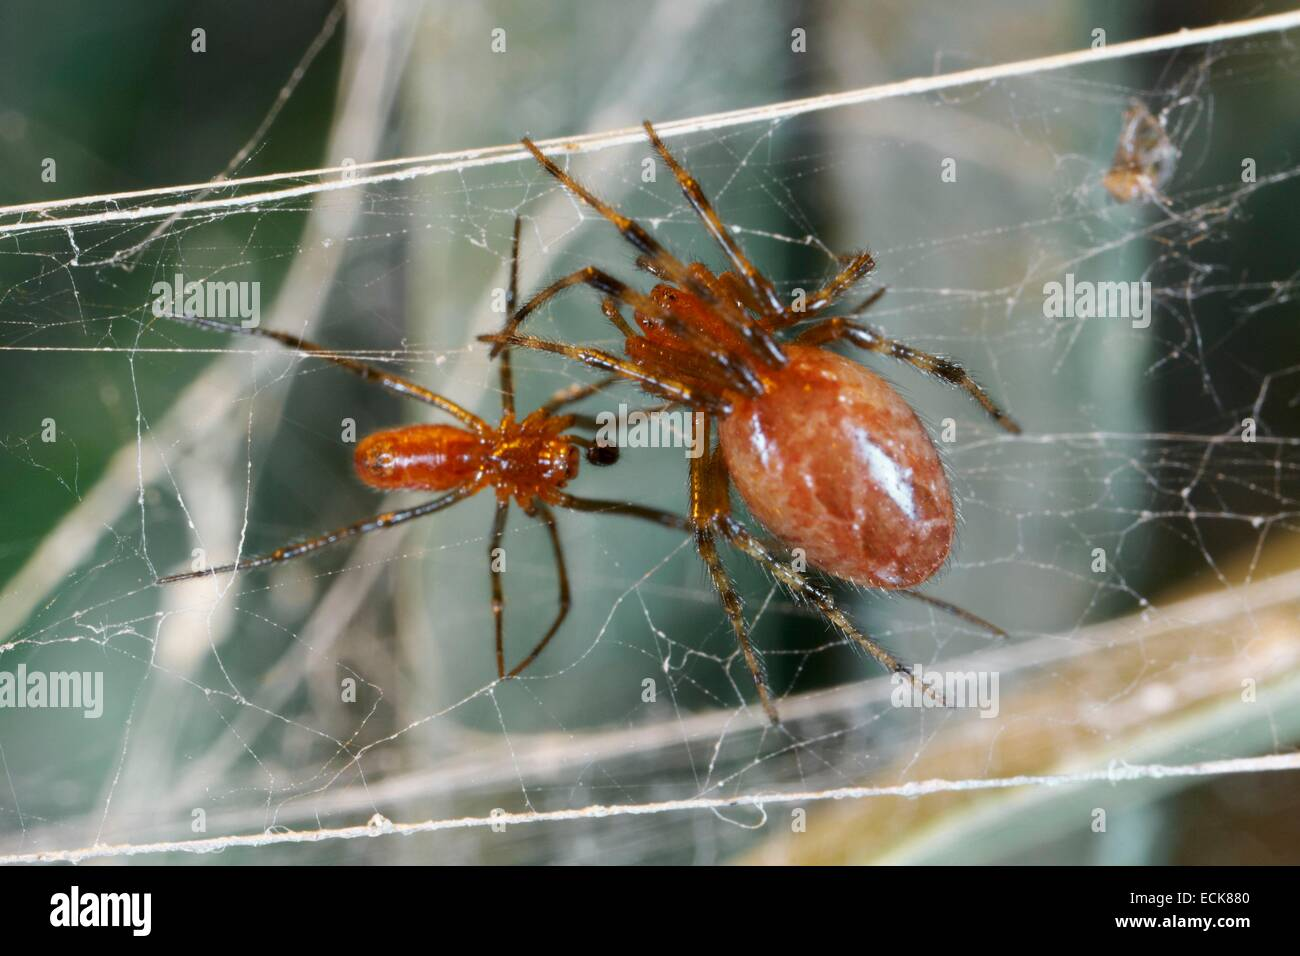 France, French Guiana, Araneae, Theridiidae, social spider (Anelosimus eximius), male and female on their web - Stock Image